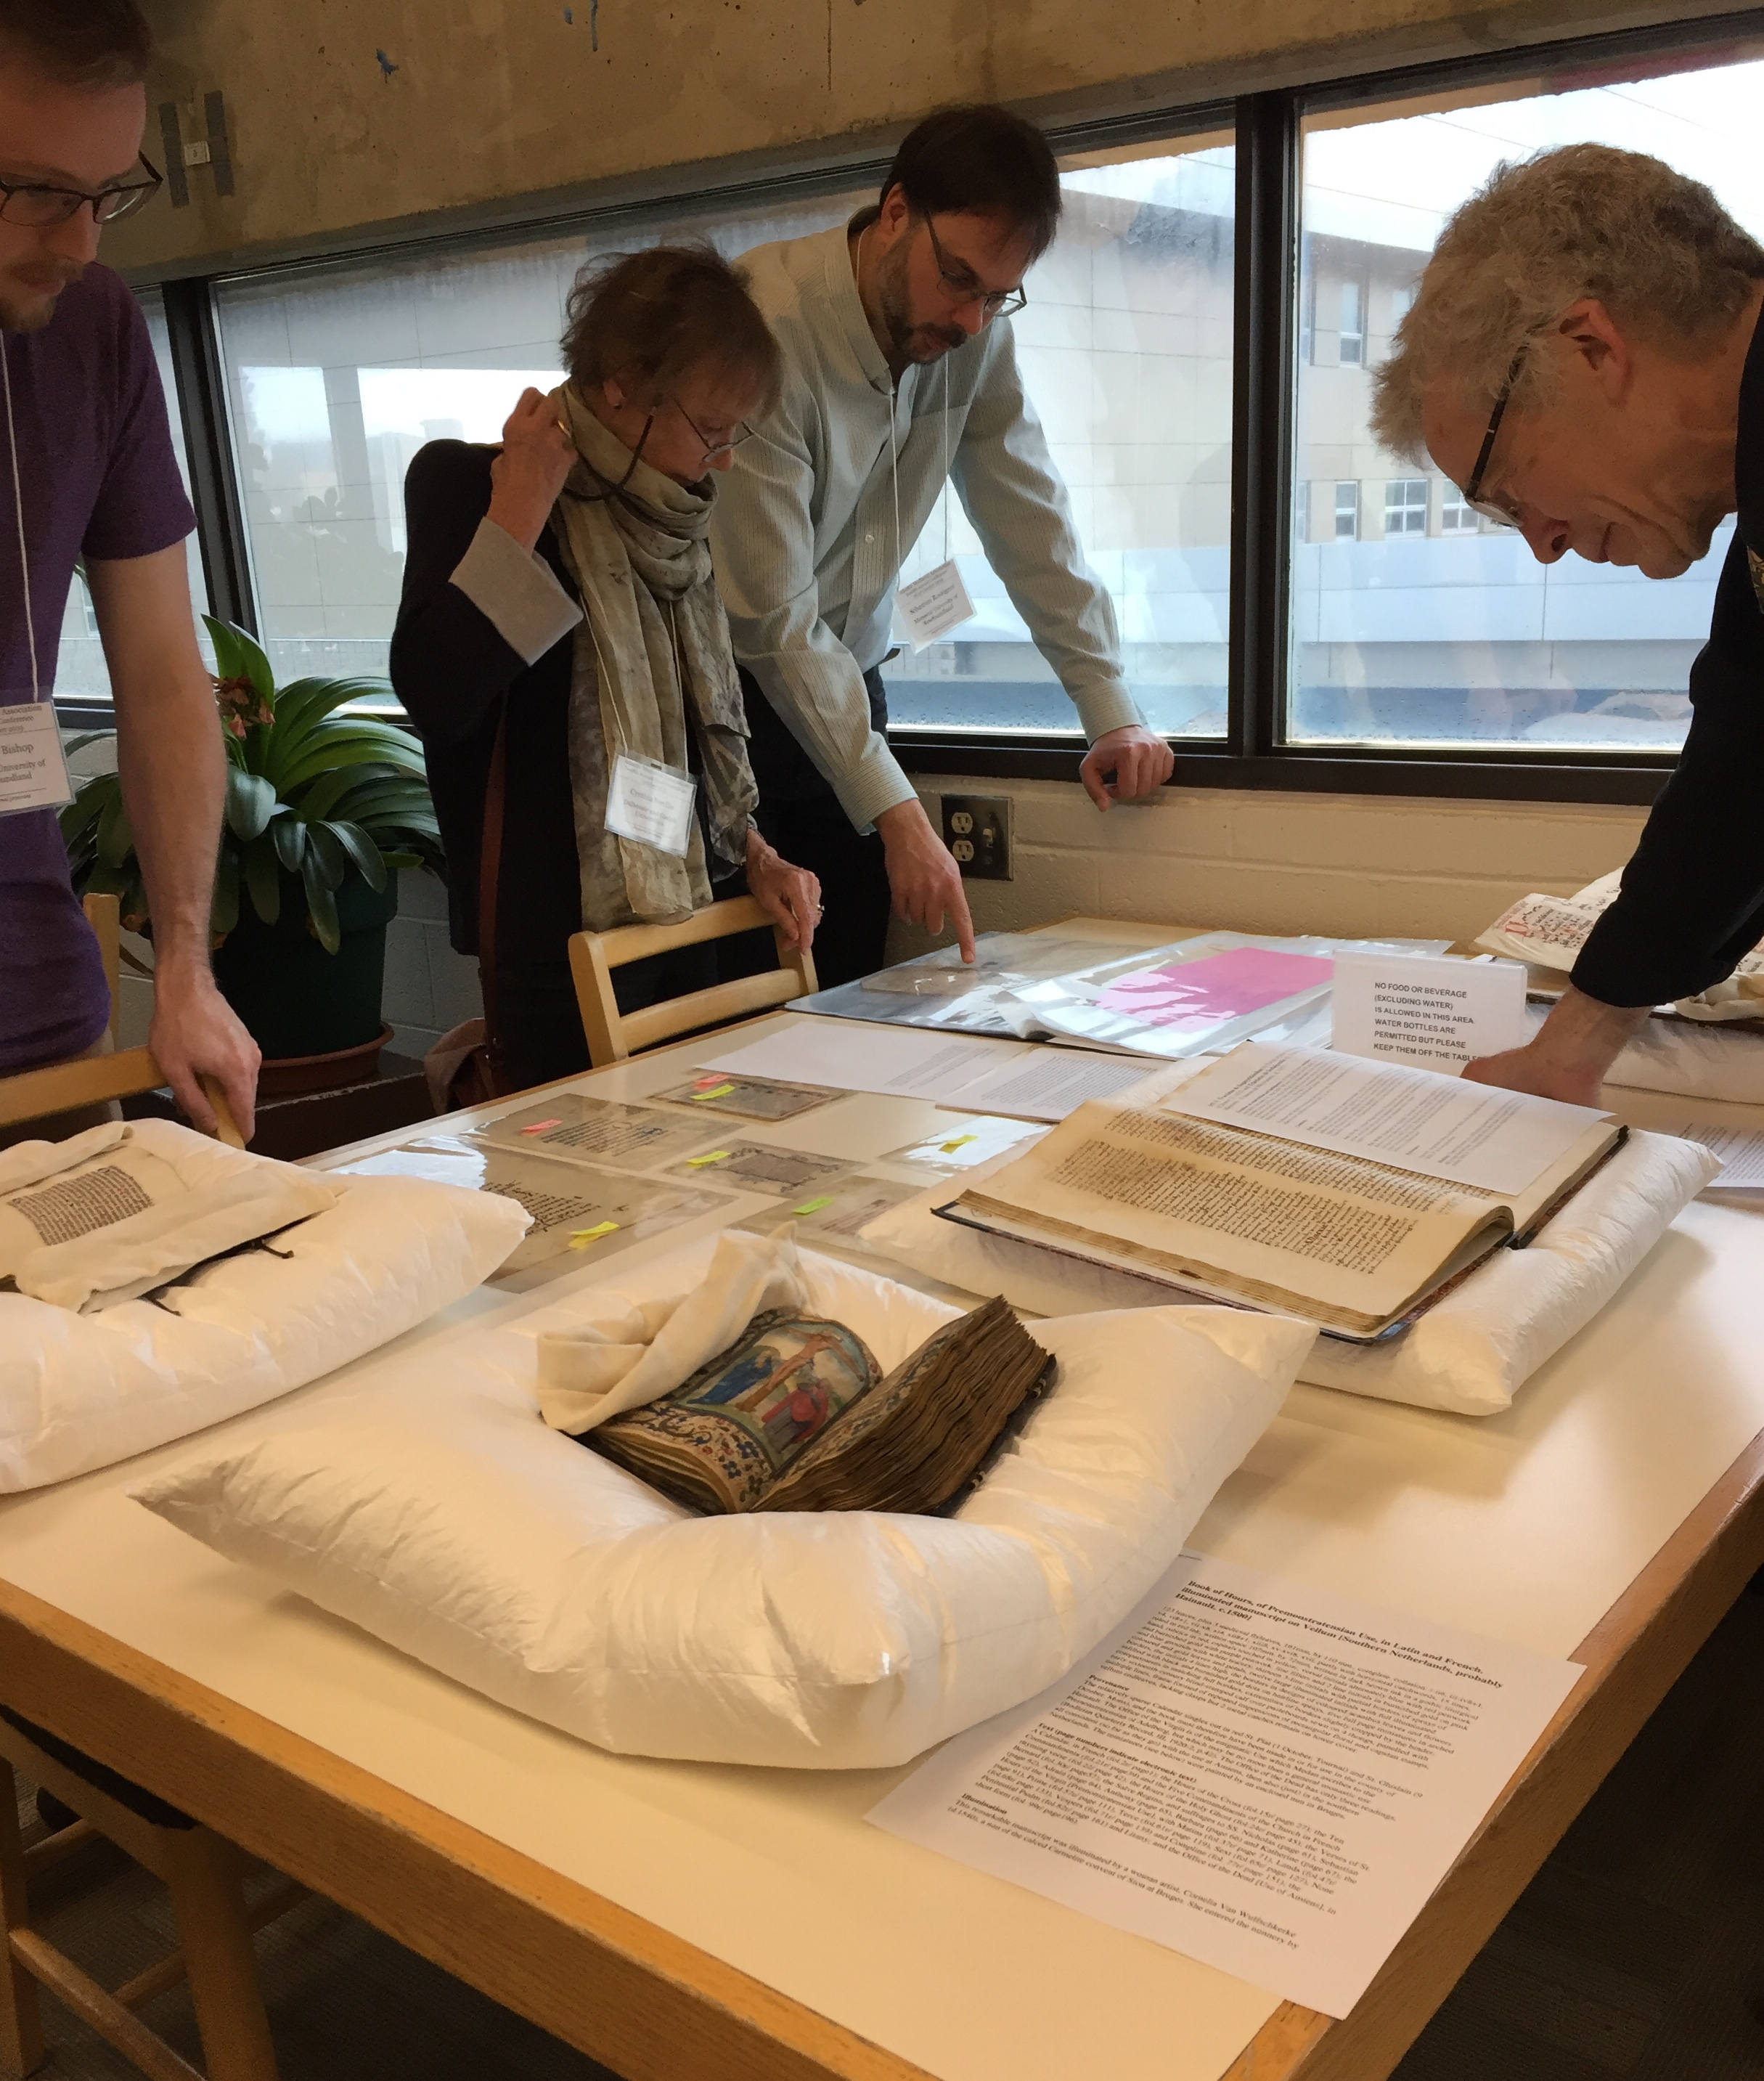 AMA conference 2019 - The Queen Elizabeth II Library general rare books collection at at MUN contains over 12,000 items and many rare printed materials, manuscript and archival material.